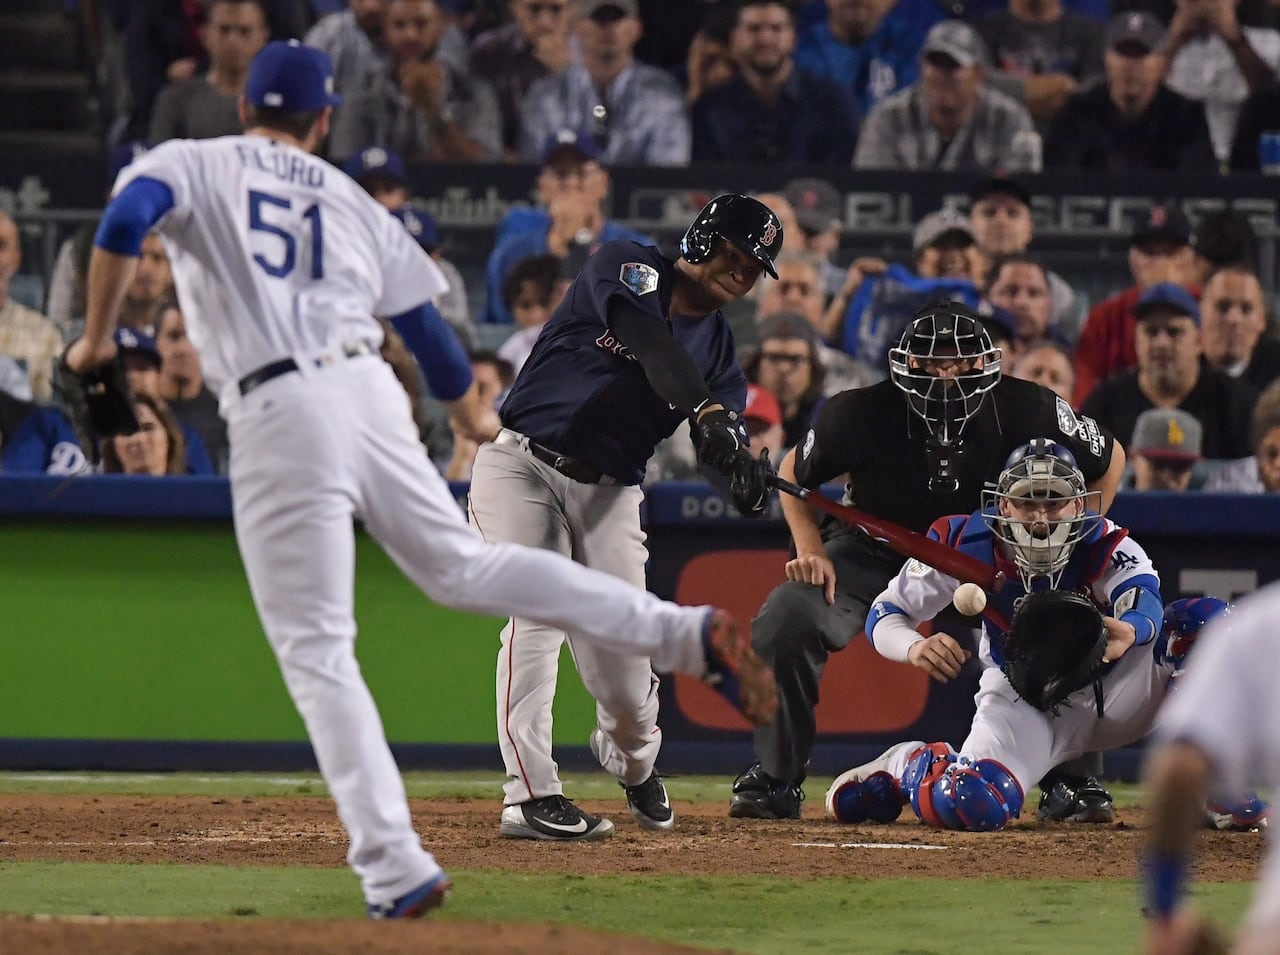 b312444f6 Red Sox steal Game 4 from Dodgers, 1 win away from World Series title | CBC  Sports